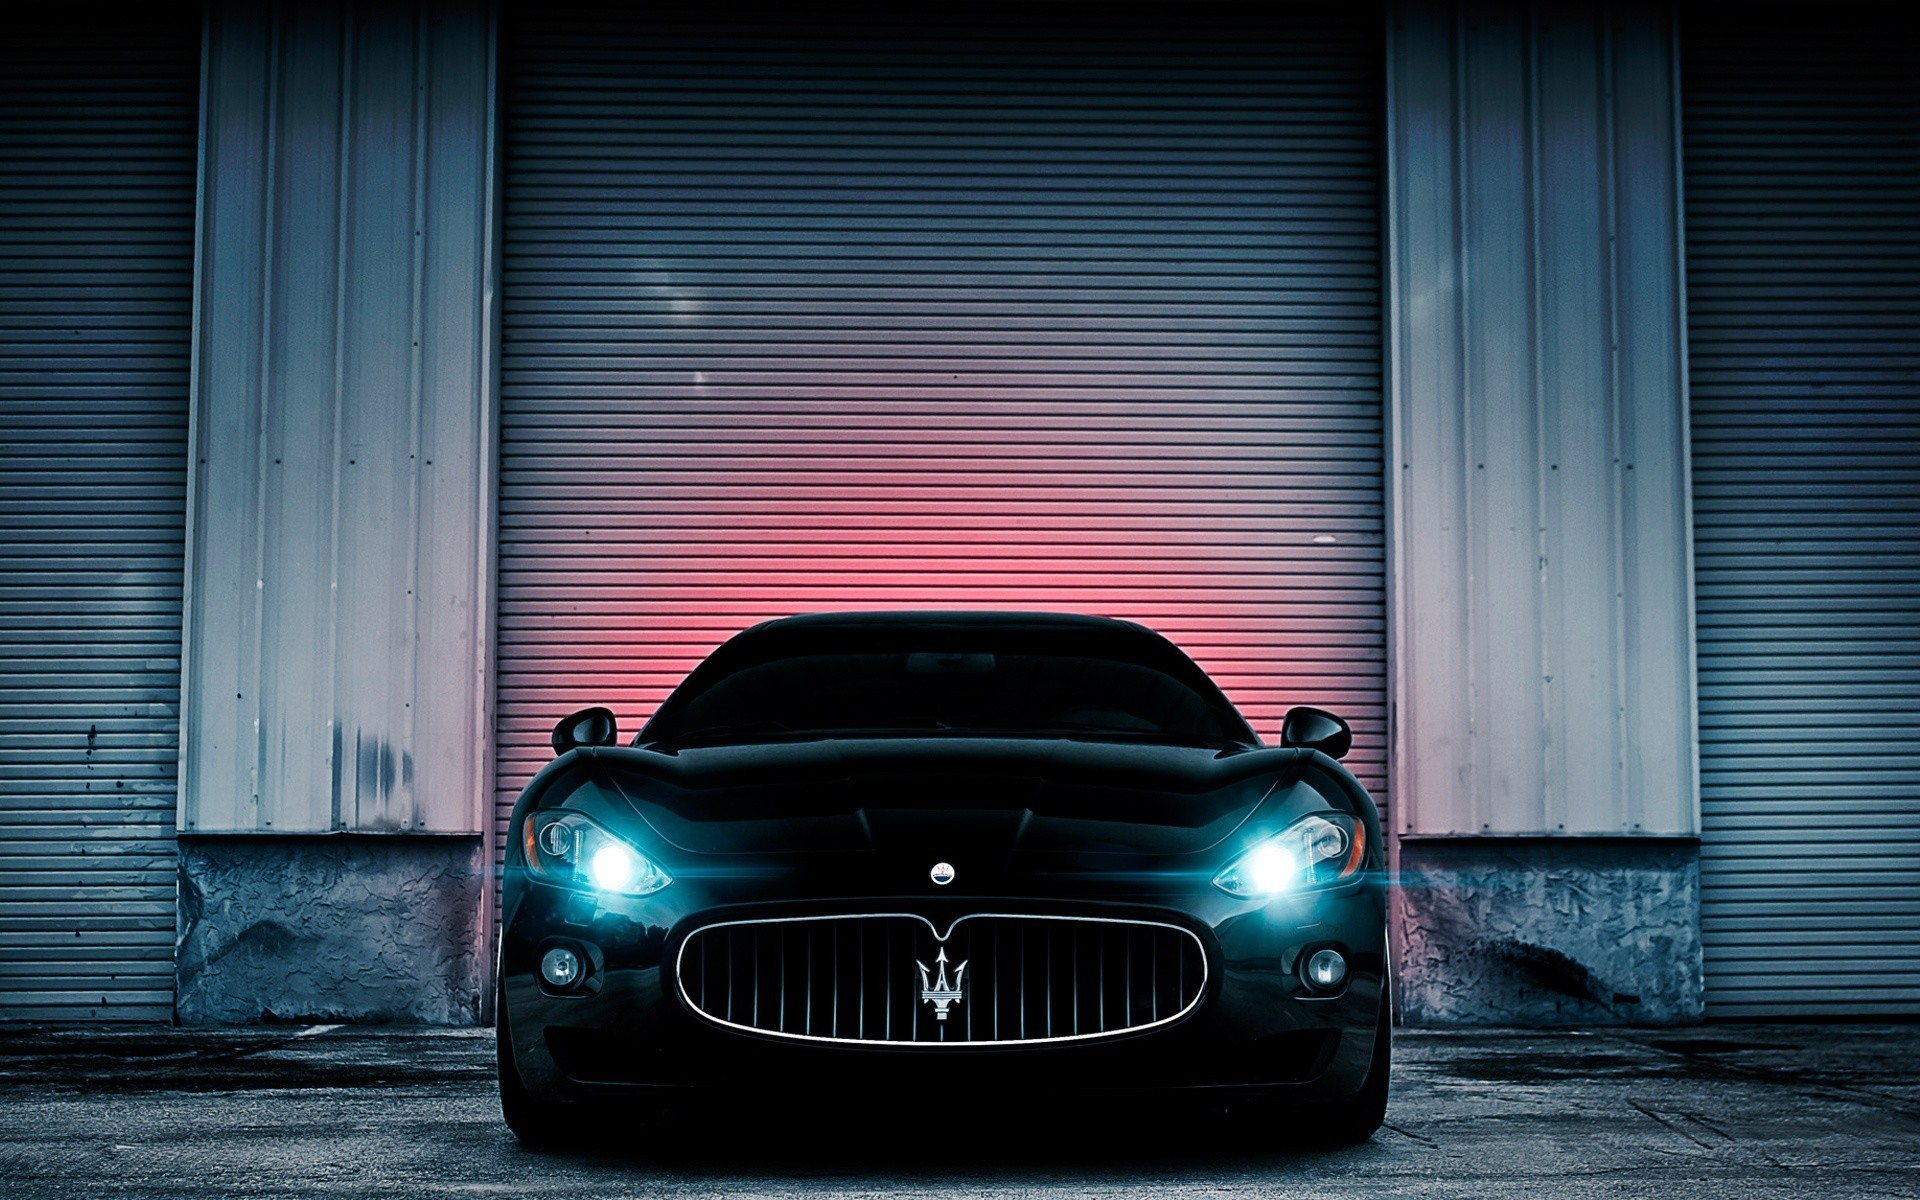 gt maserati black cars luxury sport wallpaper | allwallpaper.in